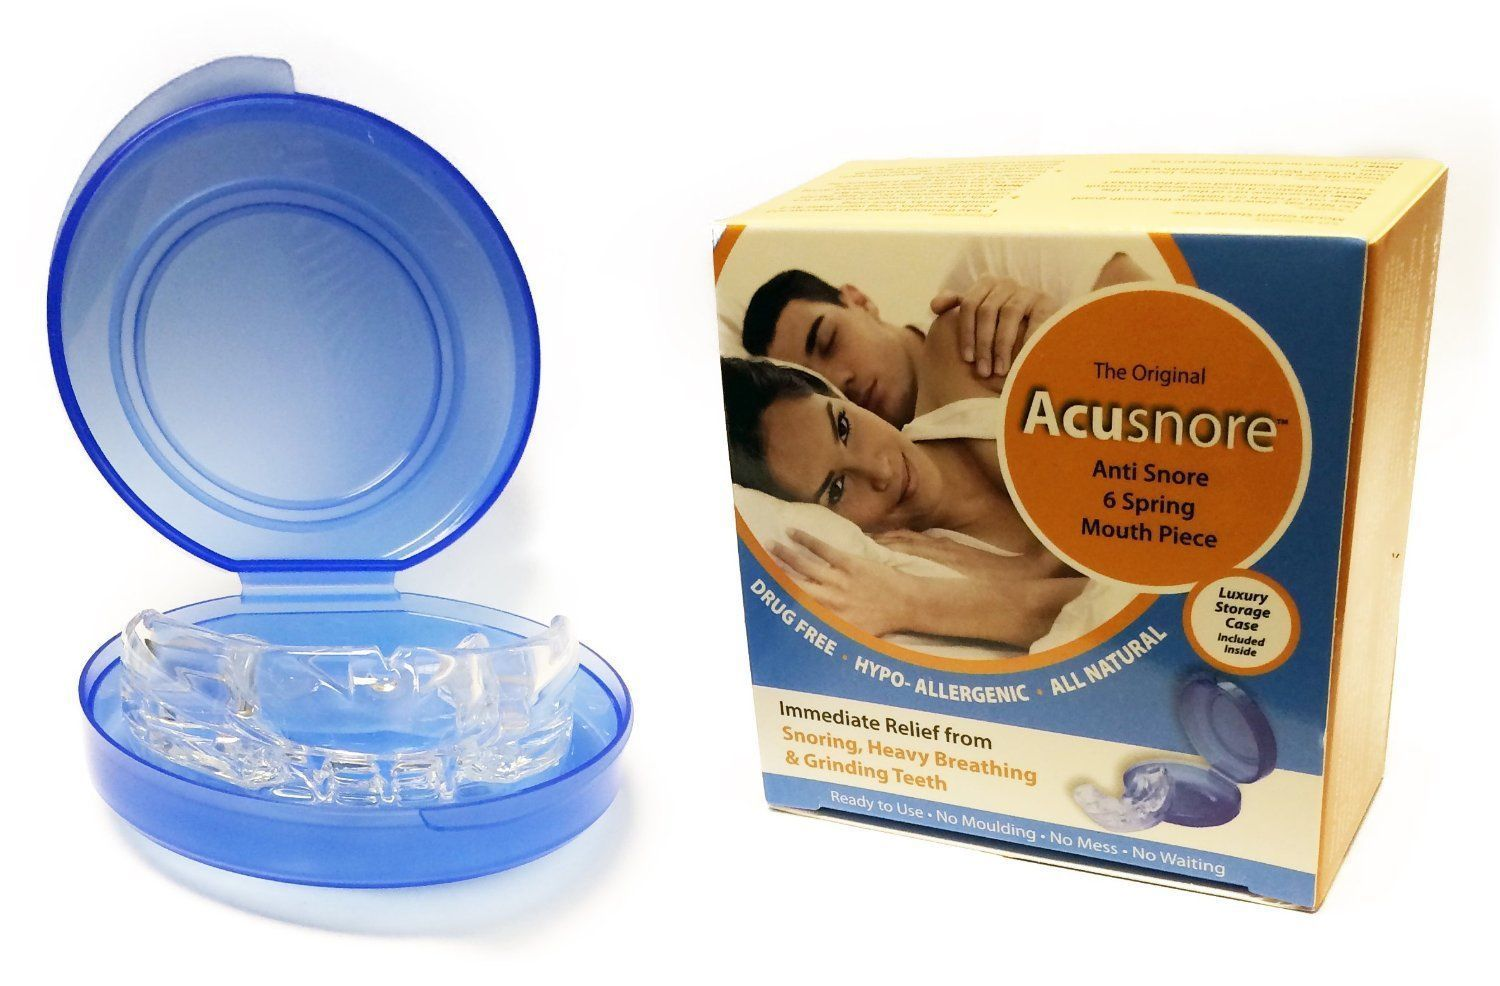 Acusnore Anti Snore 6 Spring Mouth Piece by  My Wholesale Warehouse